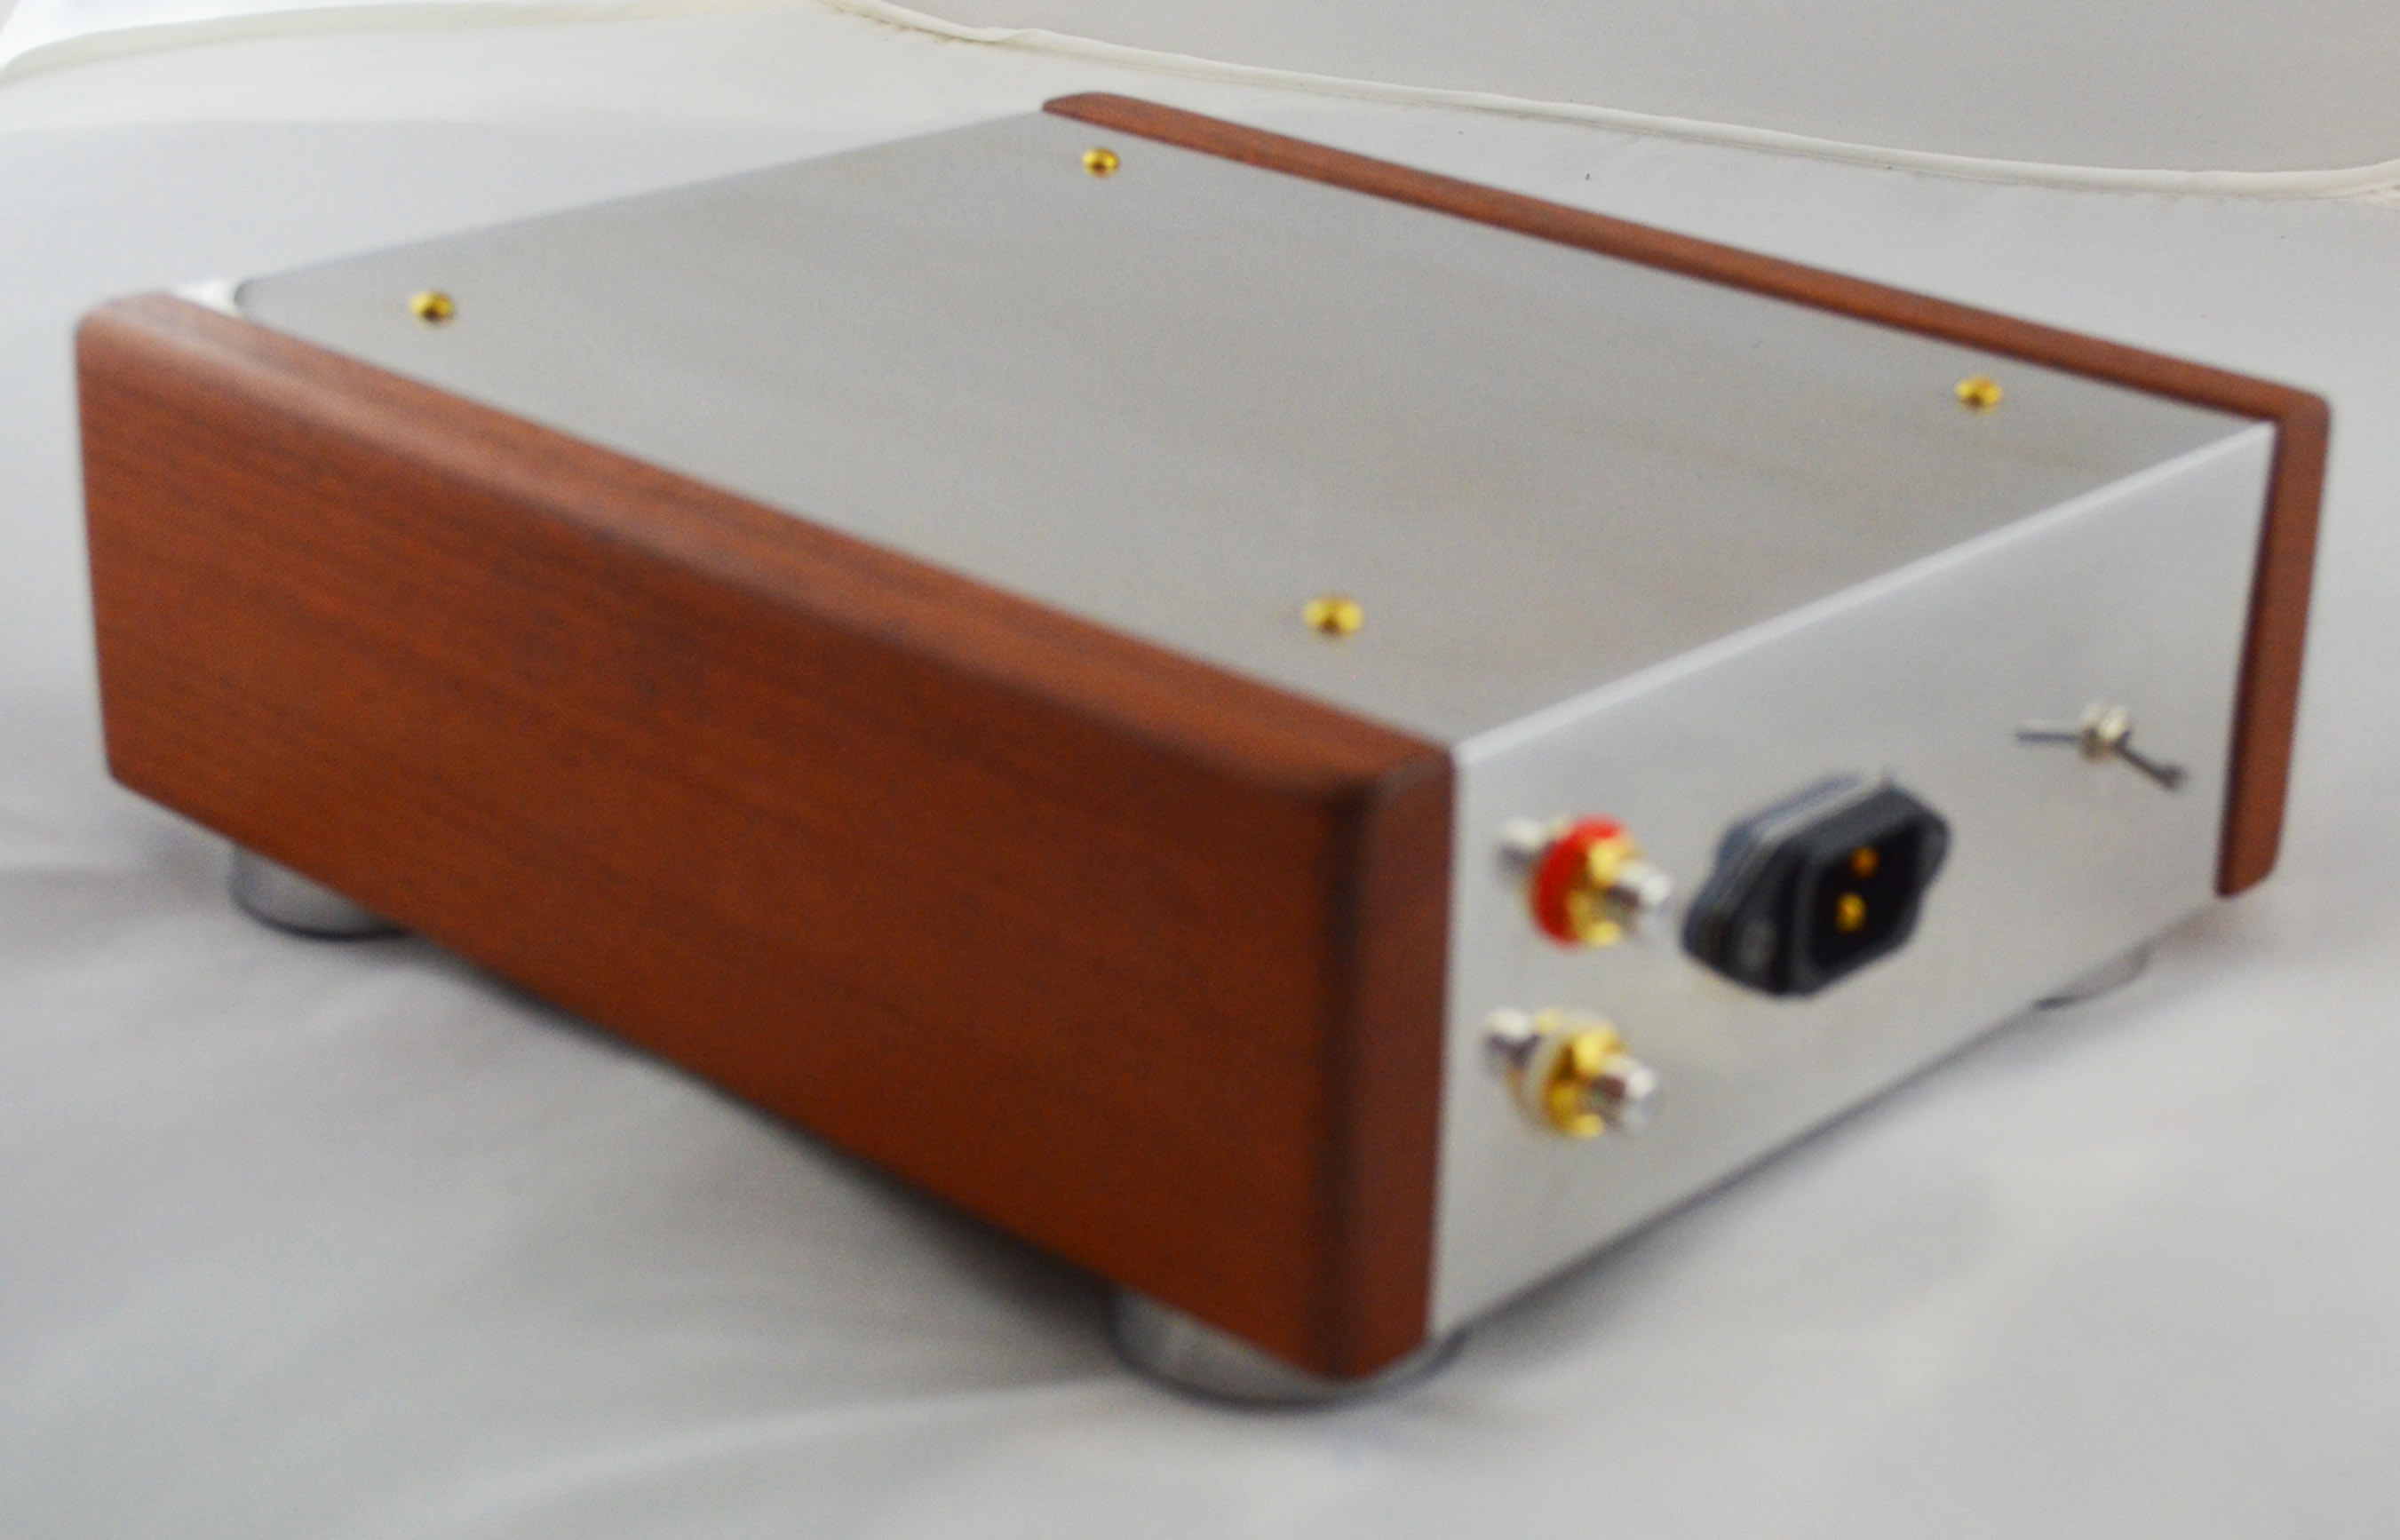 PASS DIY Headphone Amp - WHAMMY | Headphone Reviews and Discussion